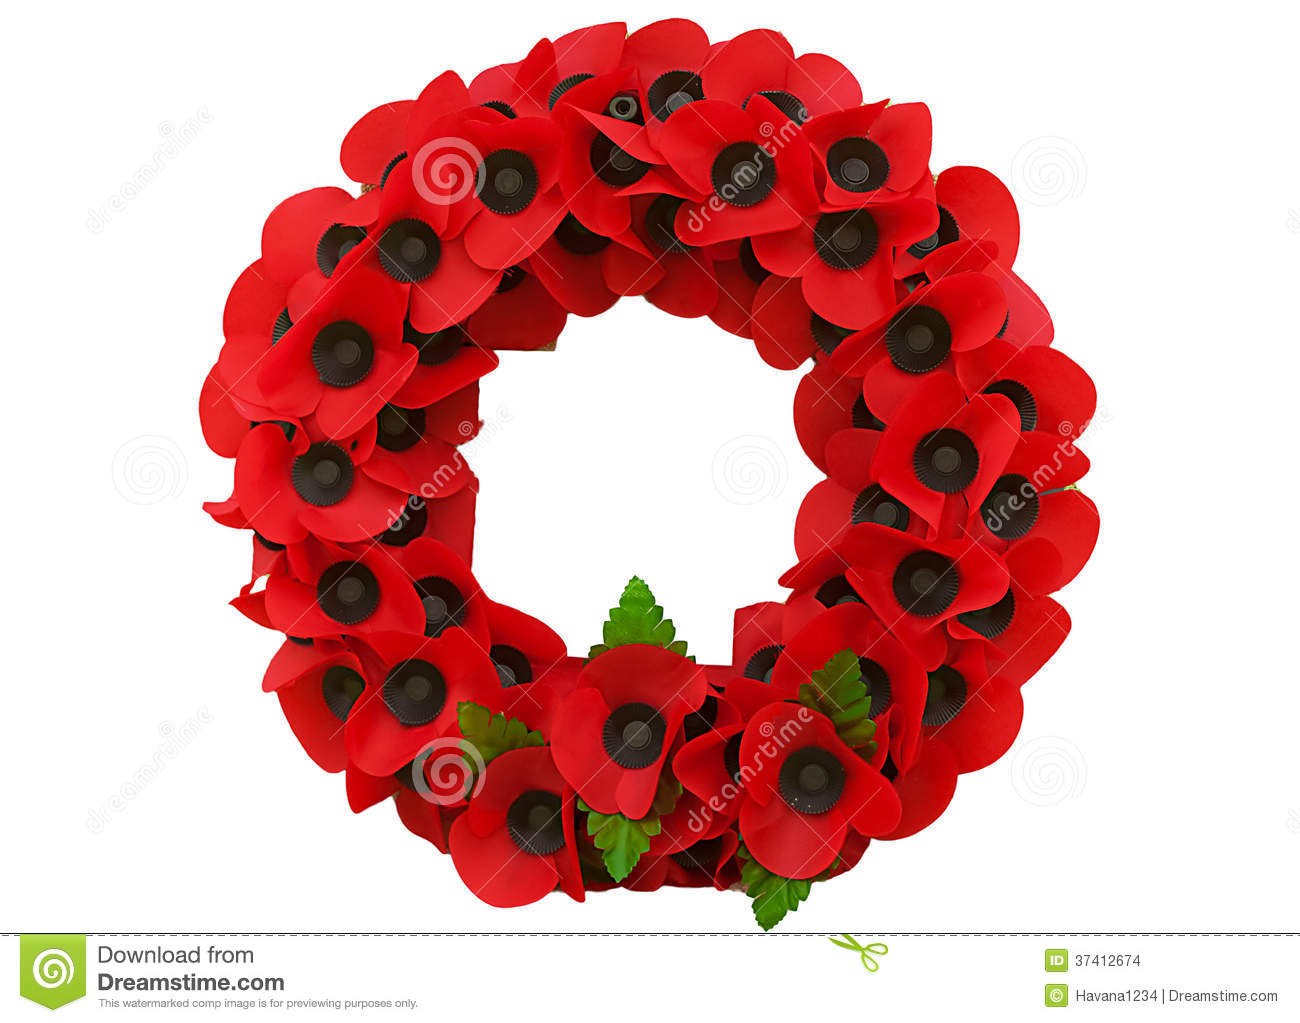 Wreath images free download best wreath images on clipartmag 1300x1023 poppy clipart poppy wreath mightylinksfo